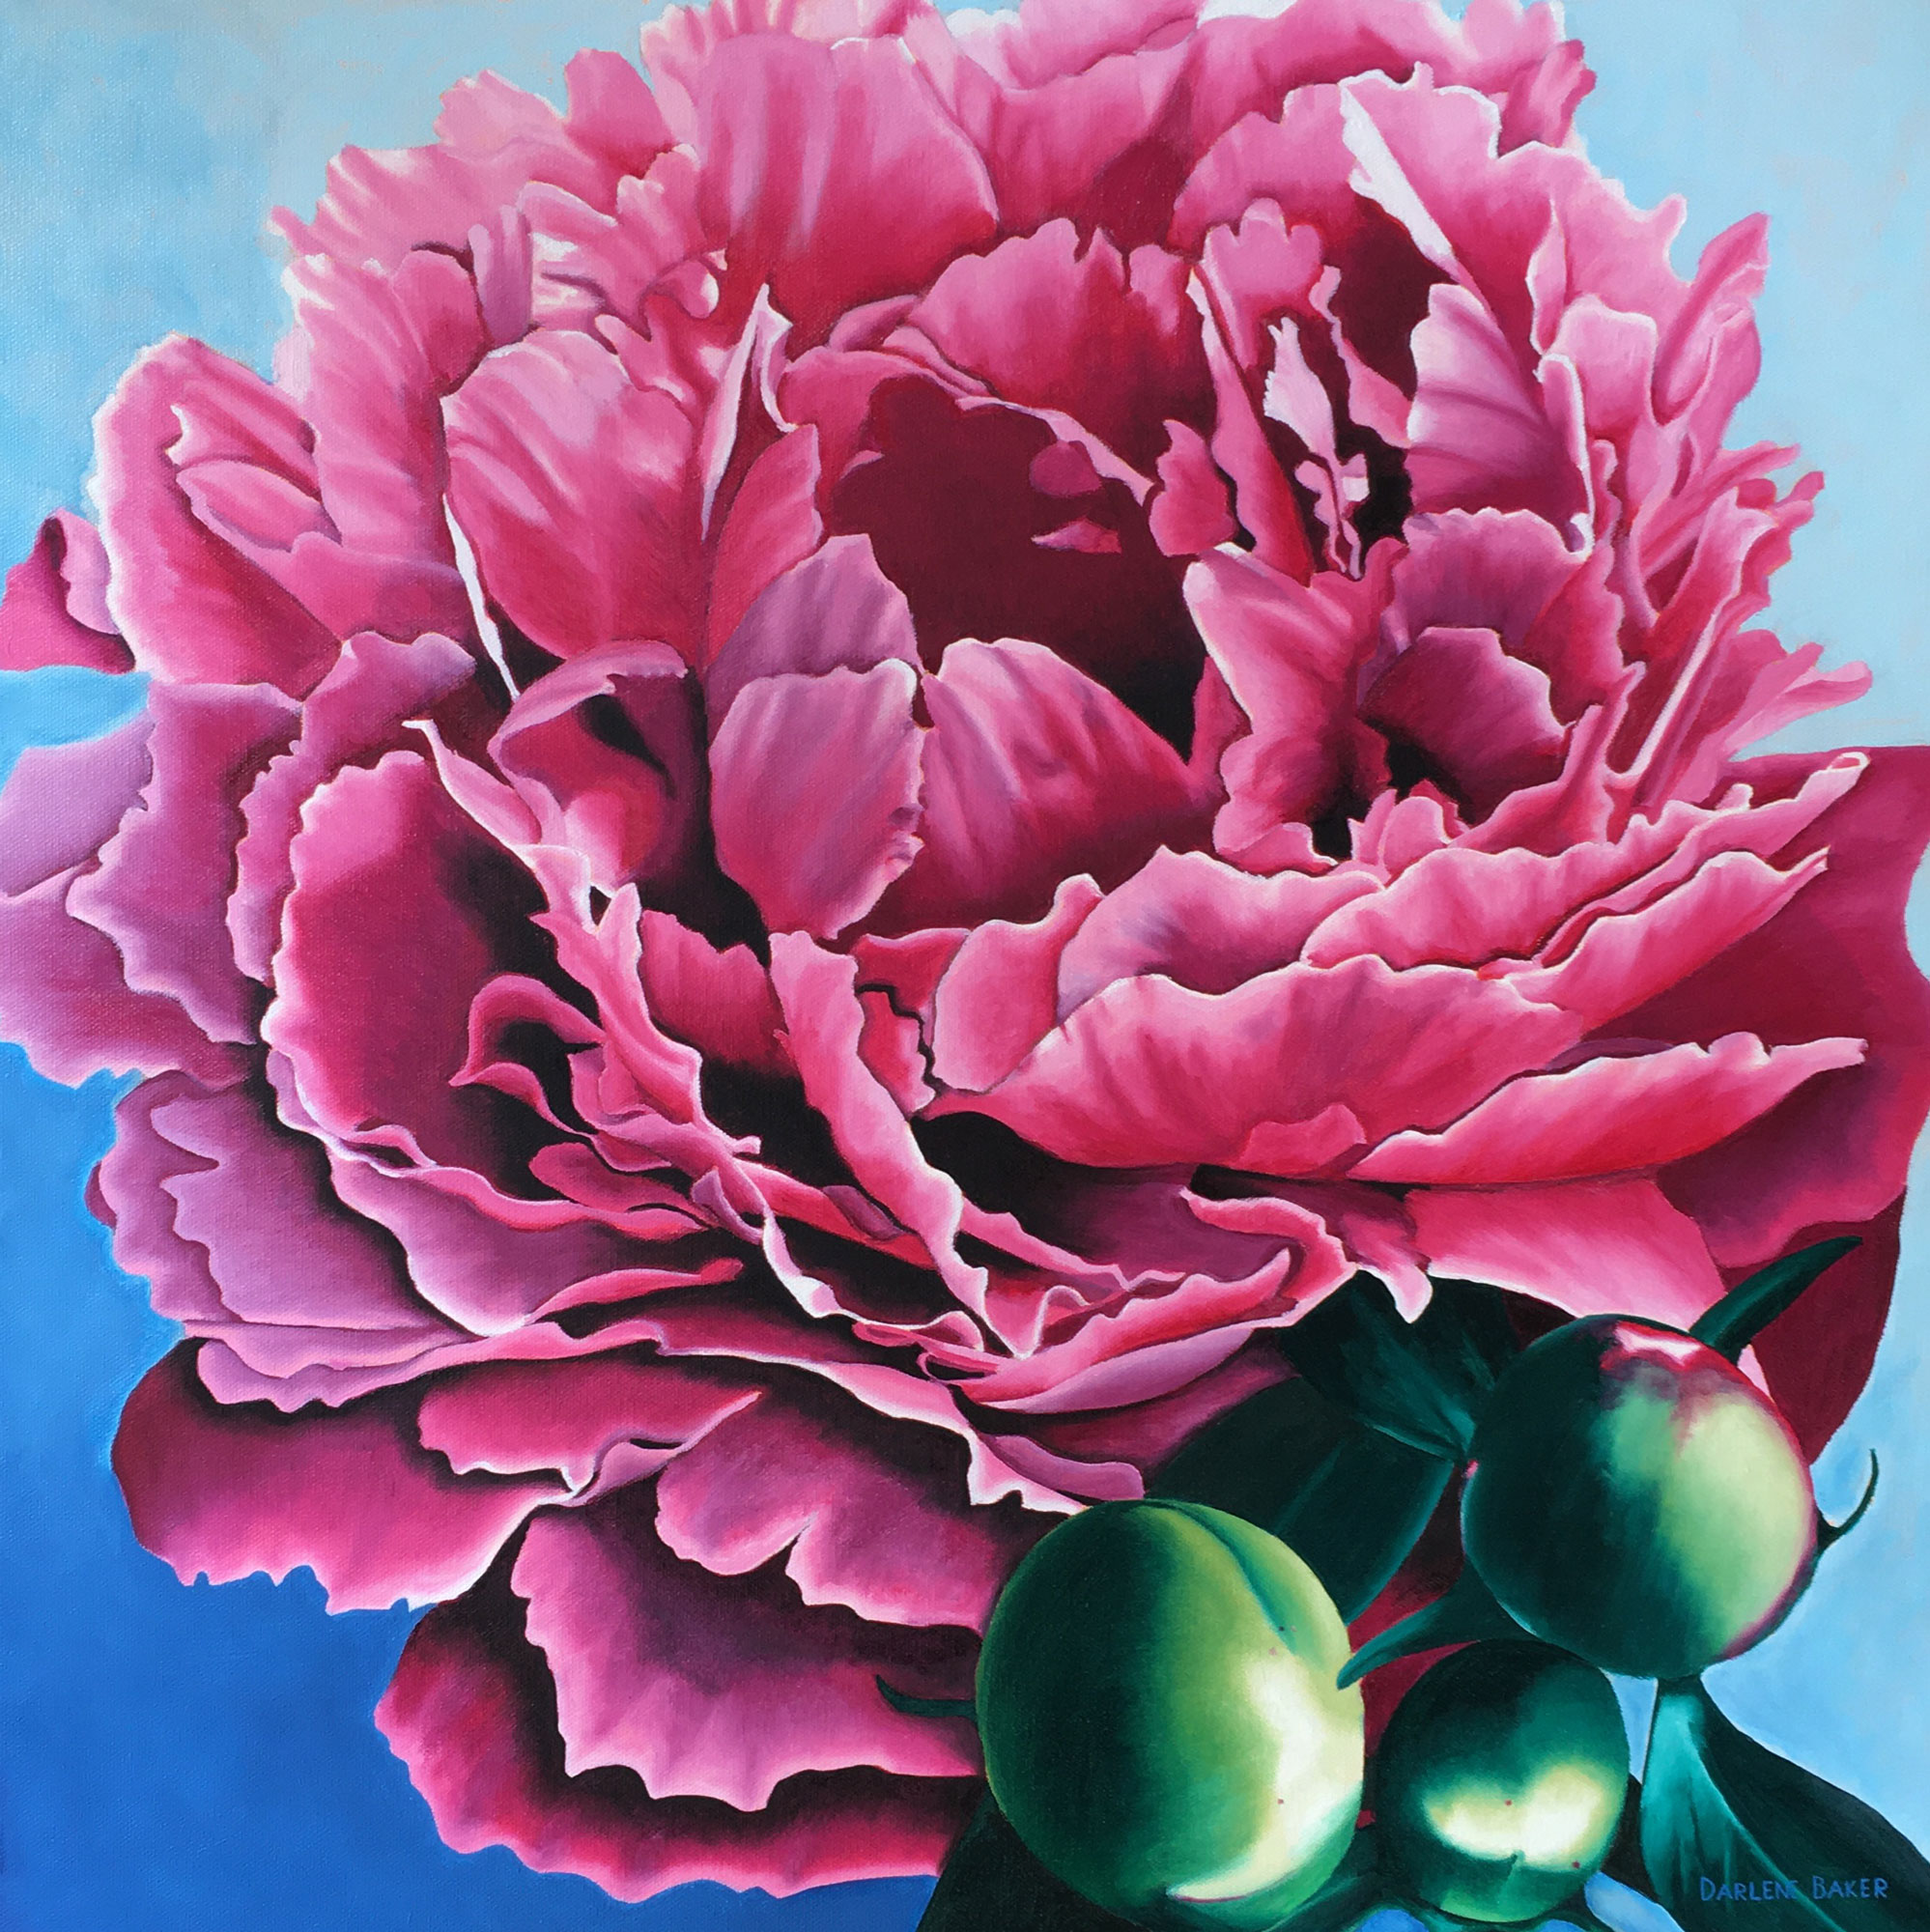 pink peony rose with 3 buds